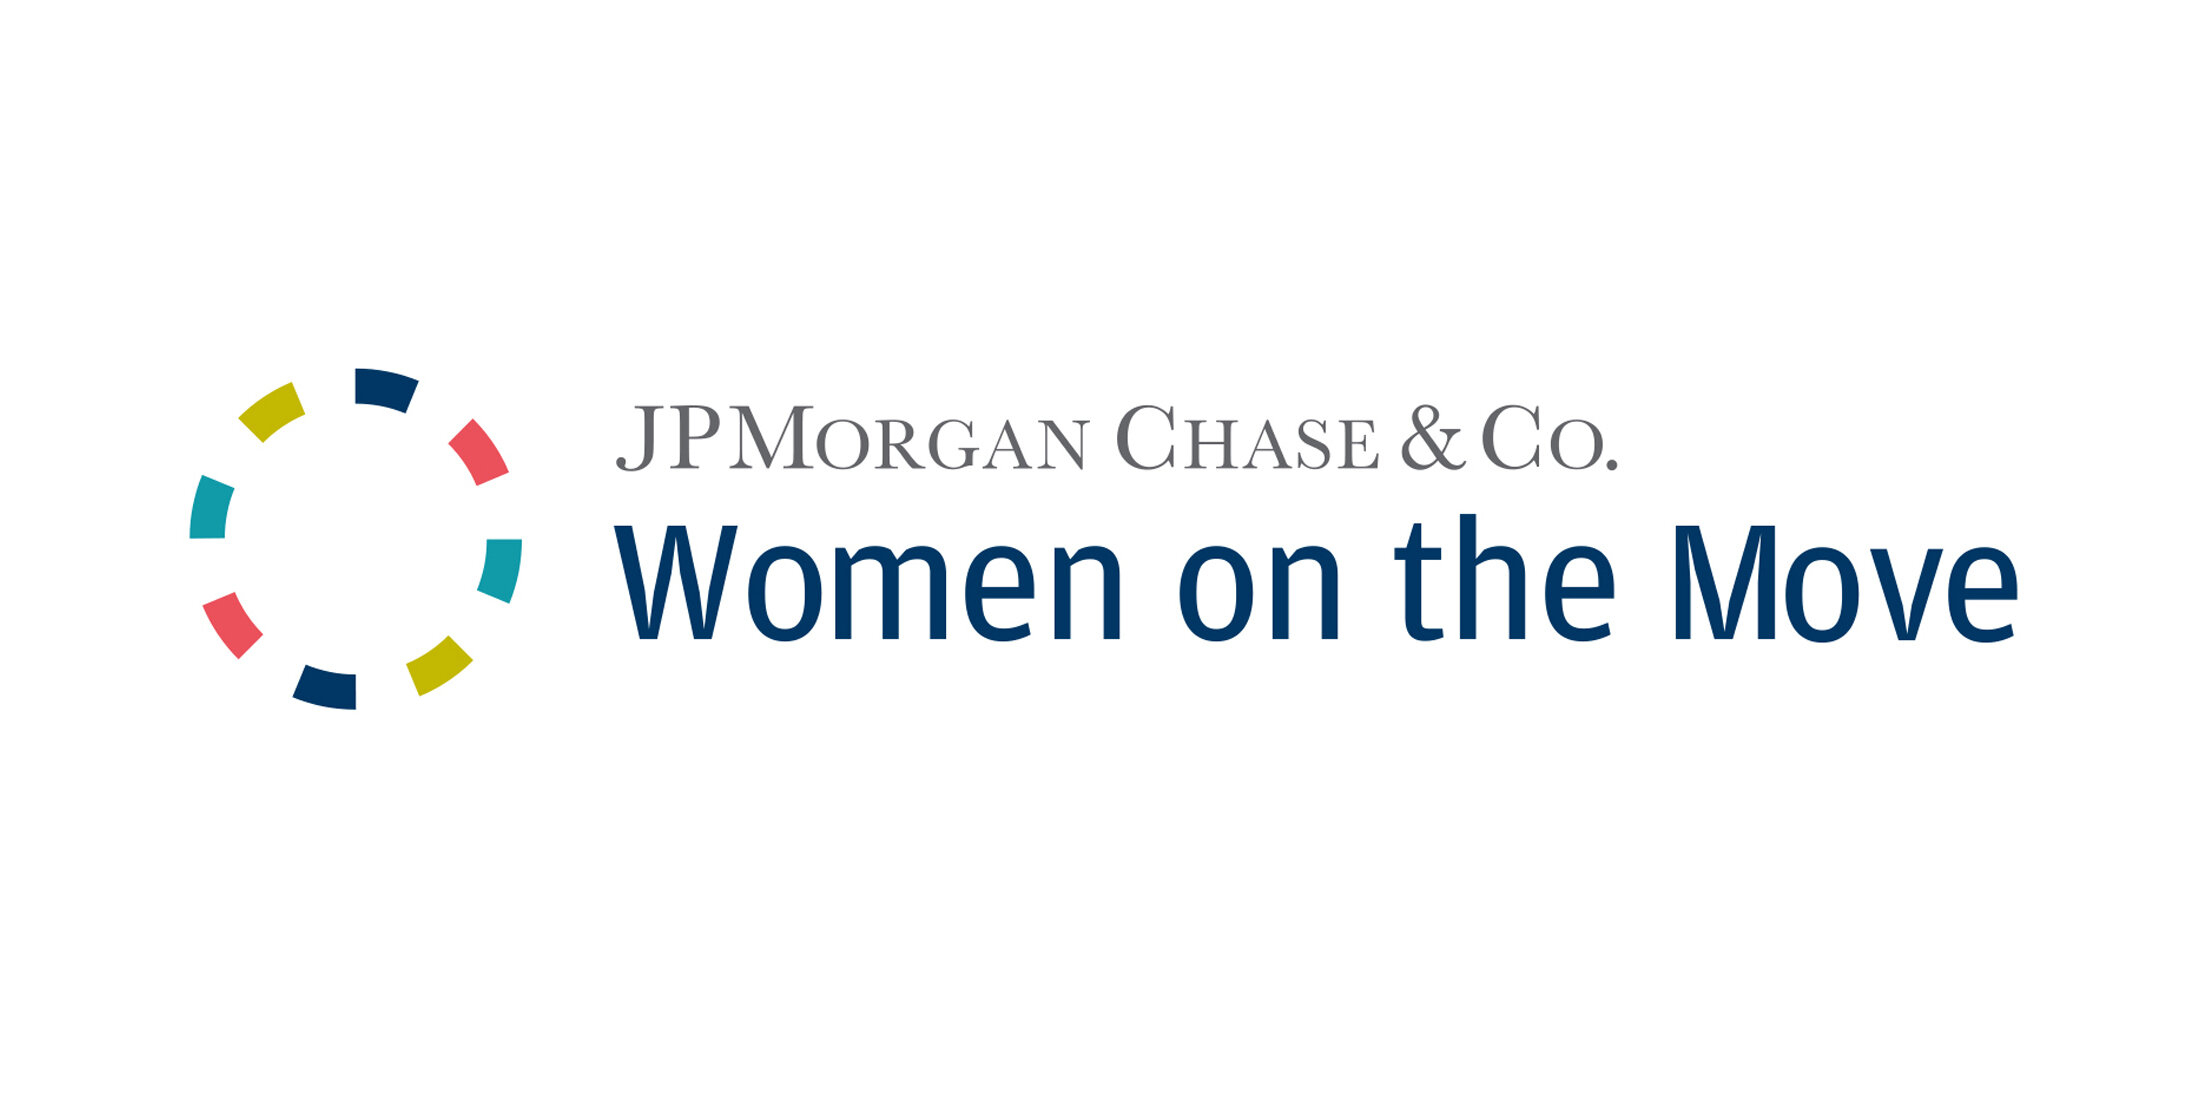 JPMorgan advances professional women through their    Women on the Move    initiative